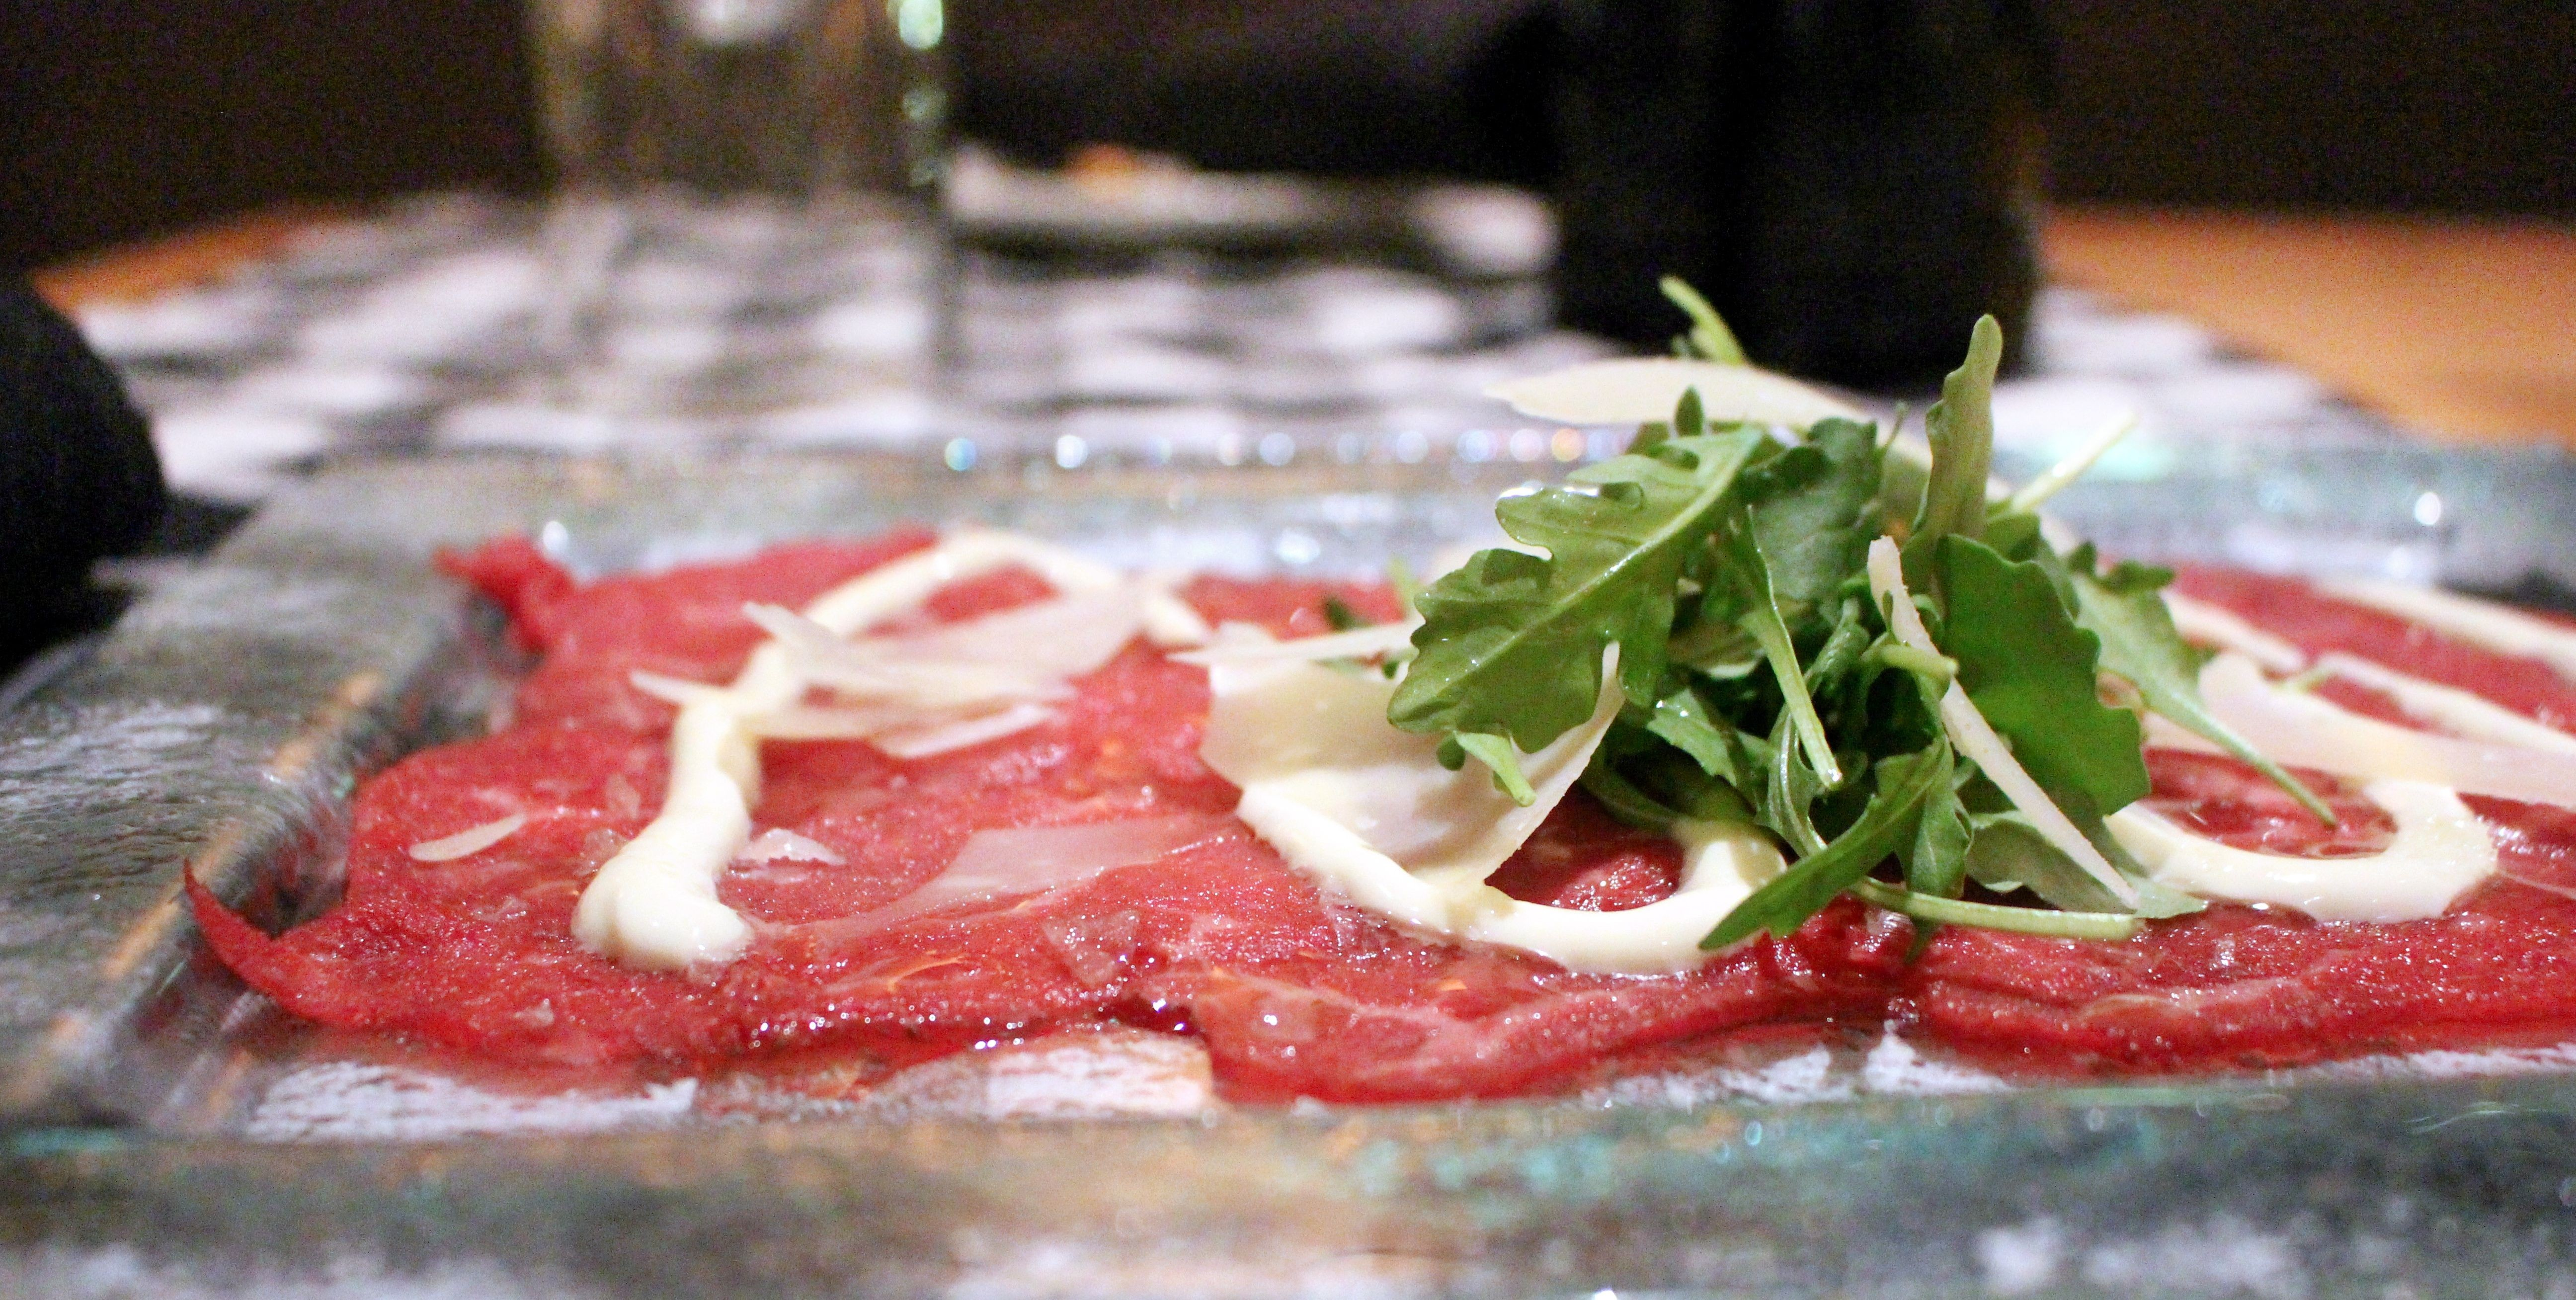 Beef Carpaccio, one of Pacci's signature dishes, from which the restaurant's name is derived.